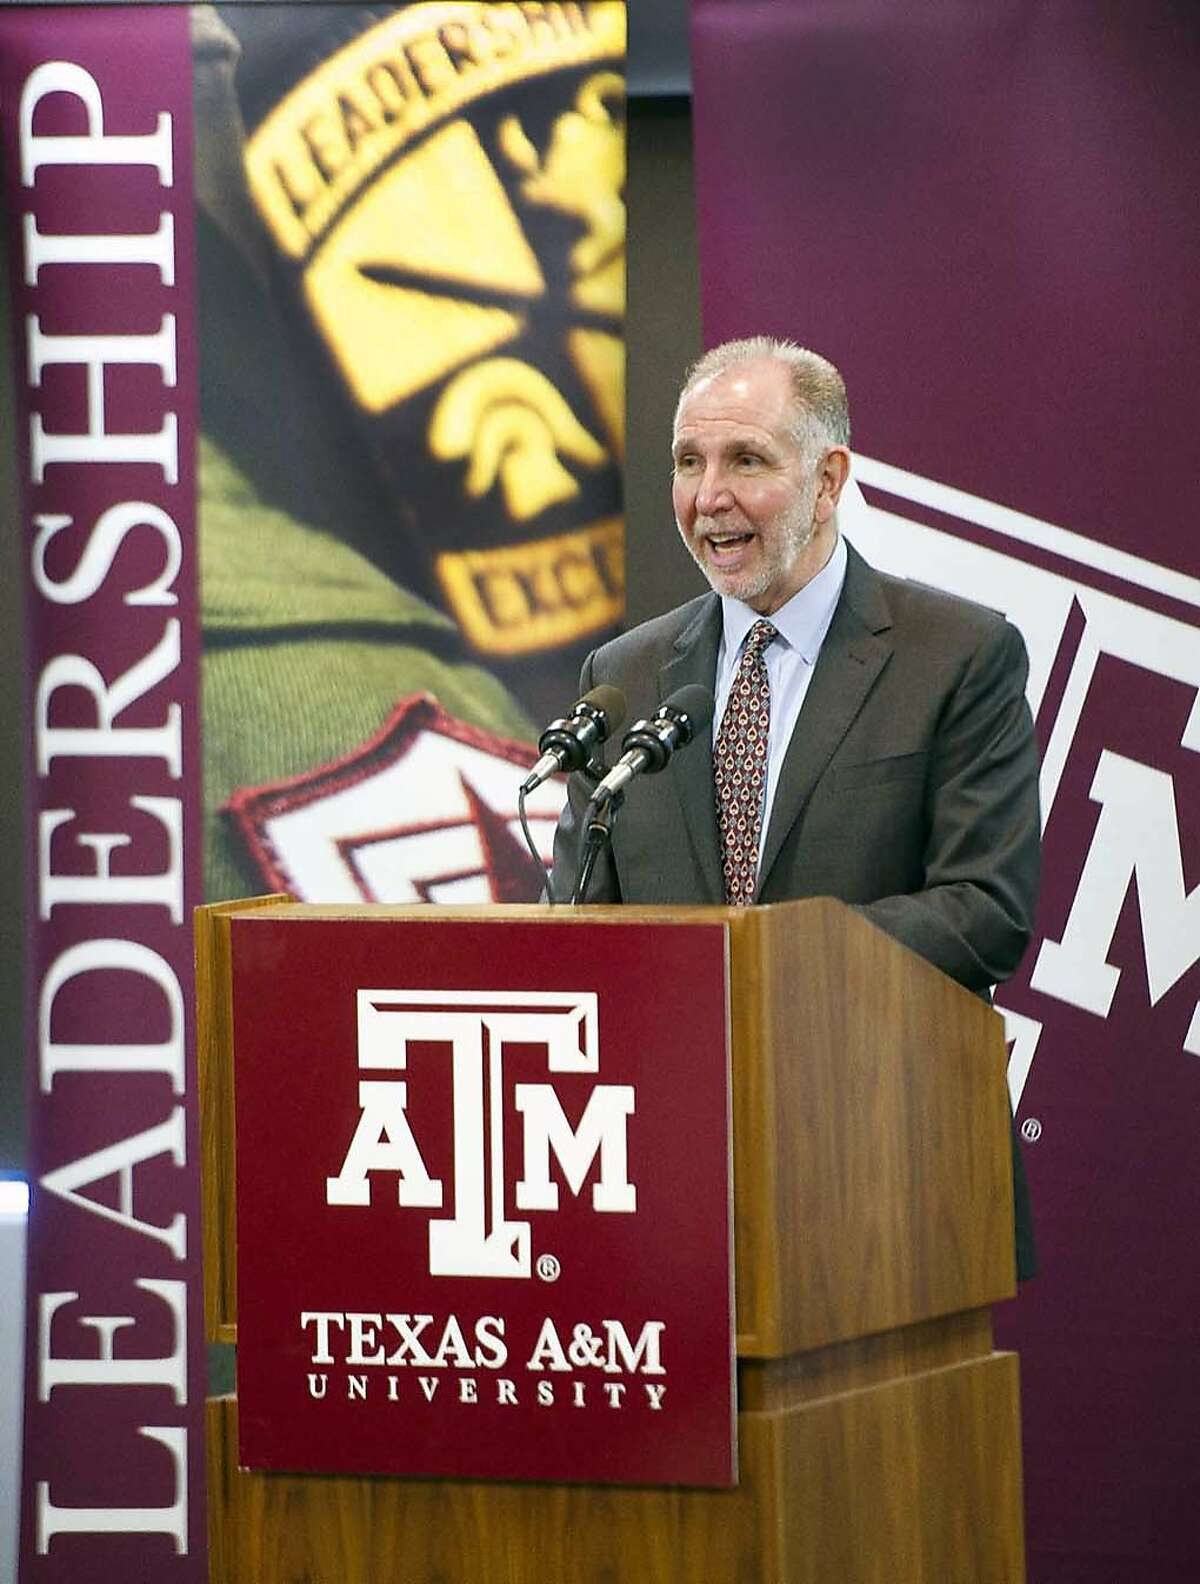 File - In this Feb. 9, 2015 file photo, newly-named president of Texas A&M University Michael Young answers questions during a news conference held in Rudder Tower on the A&M campus in College Station, Texas. Young, is in line to receive $1 million annually and a signing bonus up to $800,000, the Eagle newspaper reported Tuesday, March 10, 2015, on the proposed contract. (AP Photo/College Station Eagle, Dave McDermand, File)